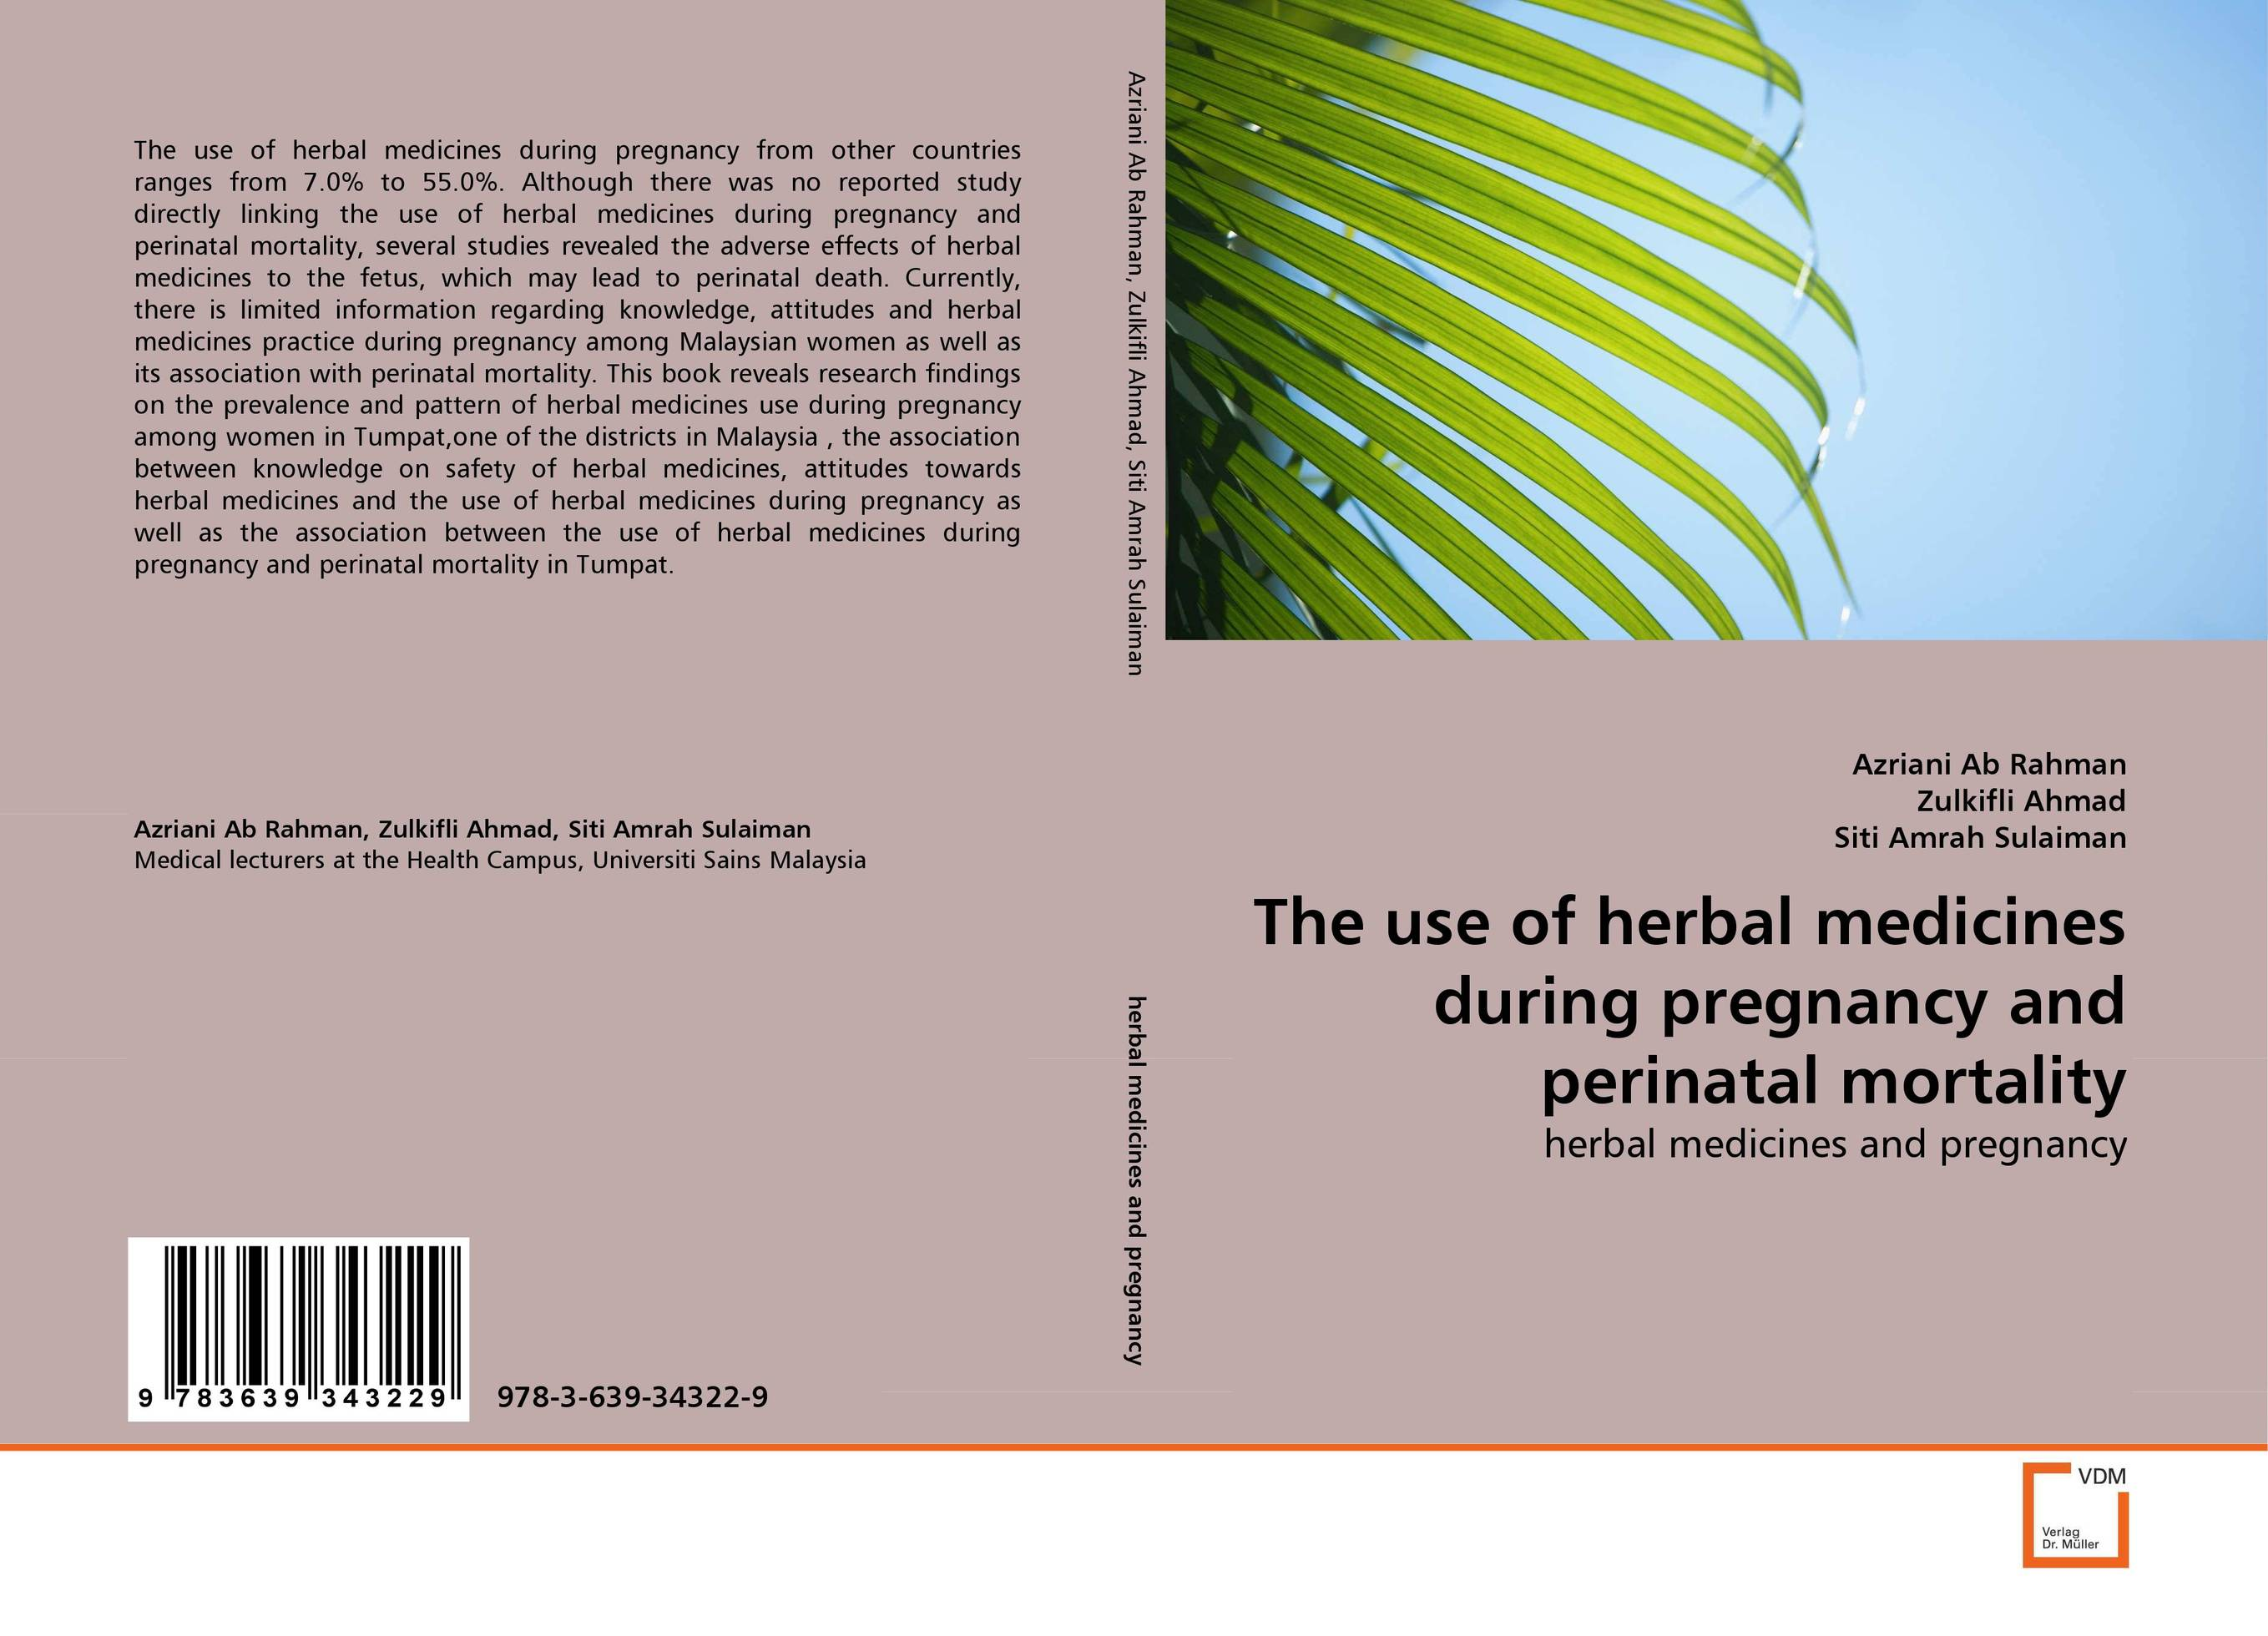 The use of herbal medicines during pregnancy and perinatal mortality alternative herbal medicines for shrimp aquaculture